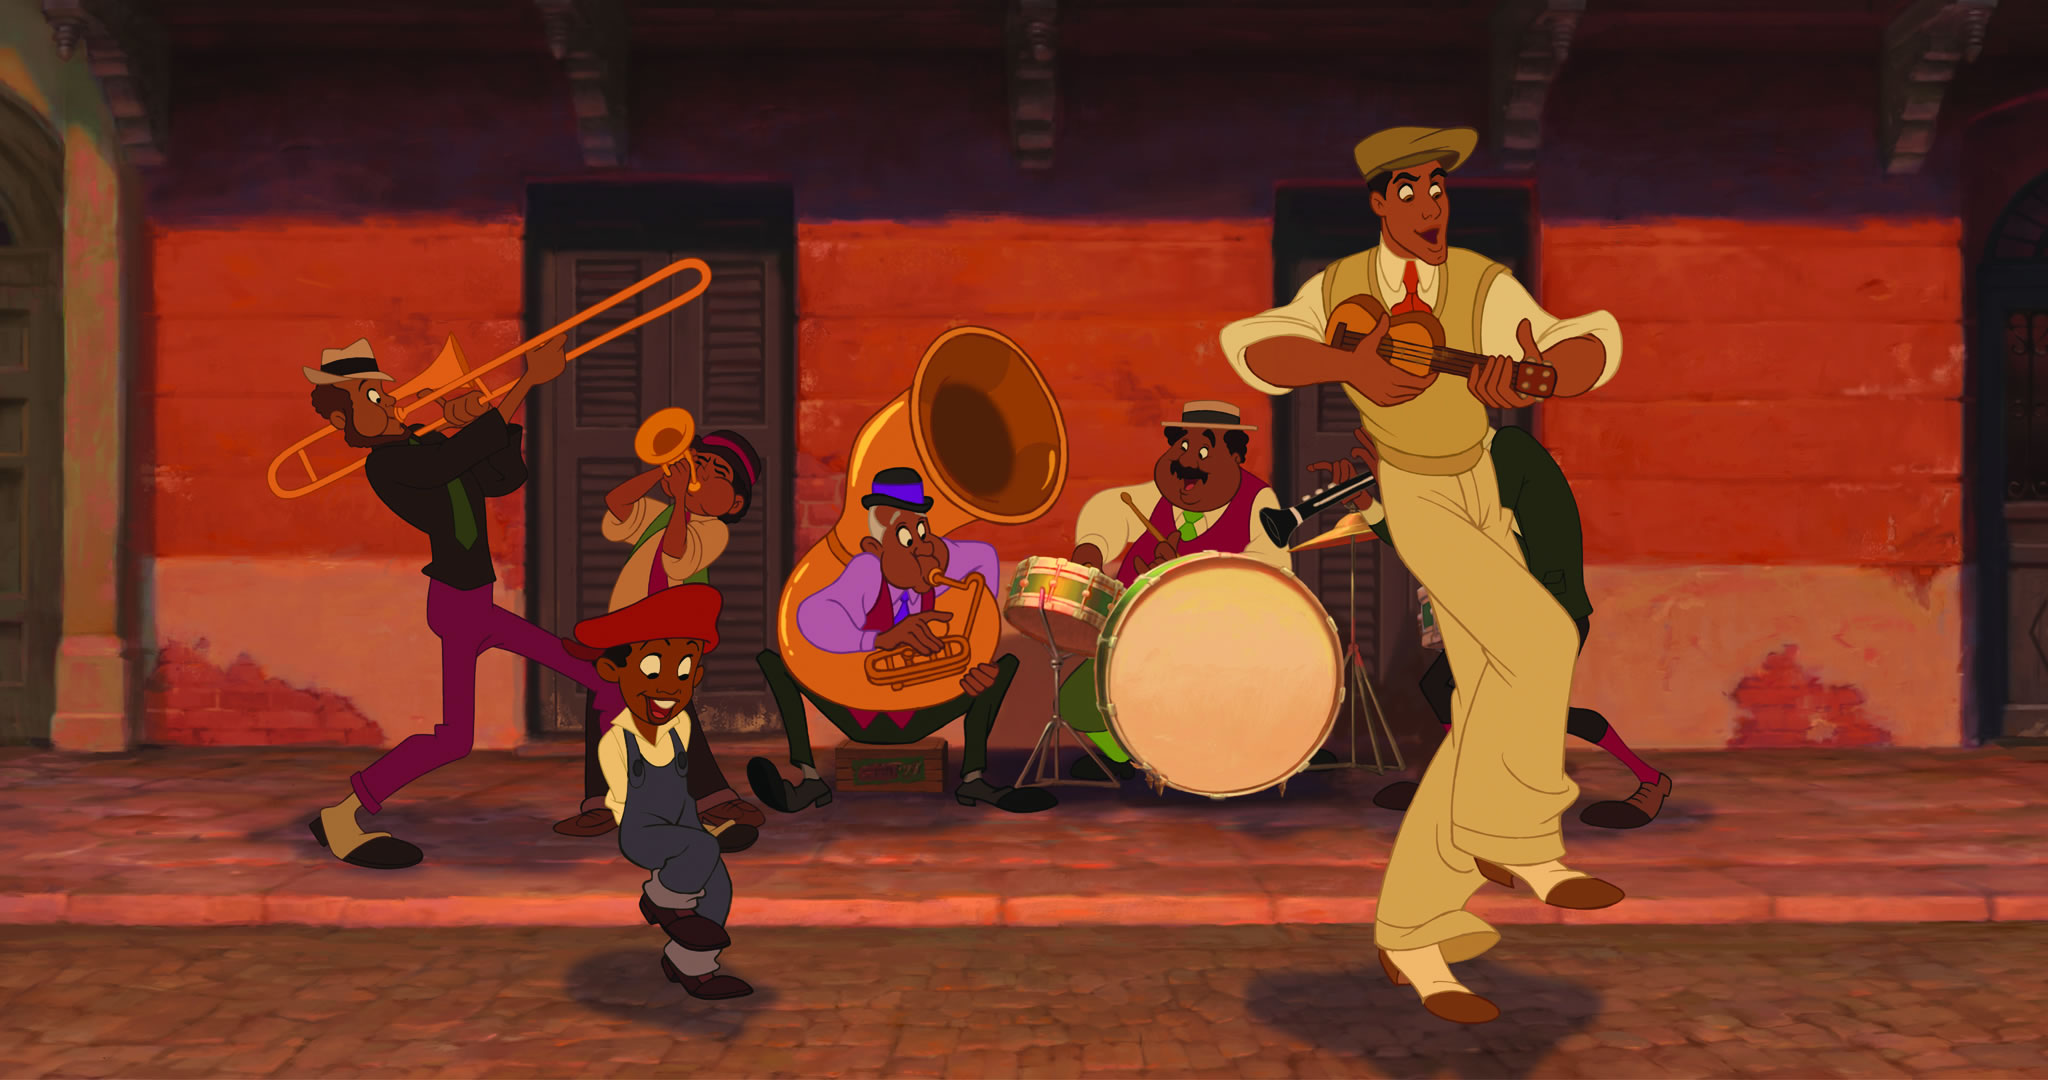 Naveen In New Orleans From Disneys Princess And The Frog Wallpaper